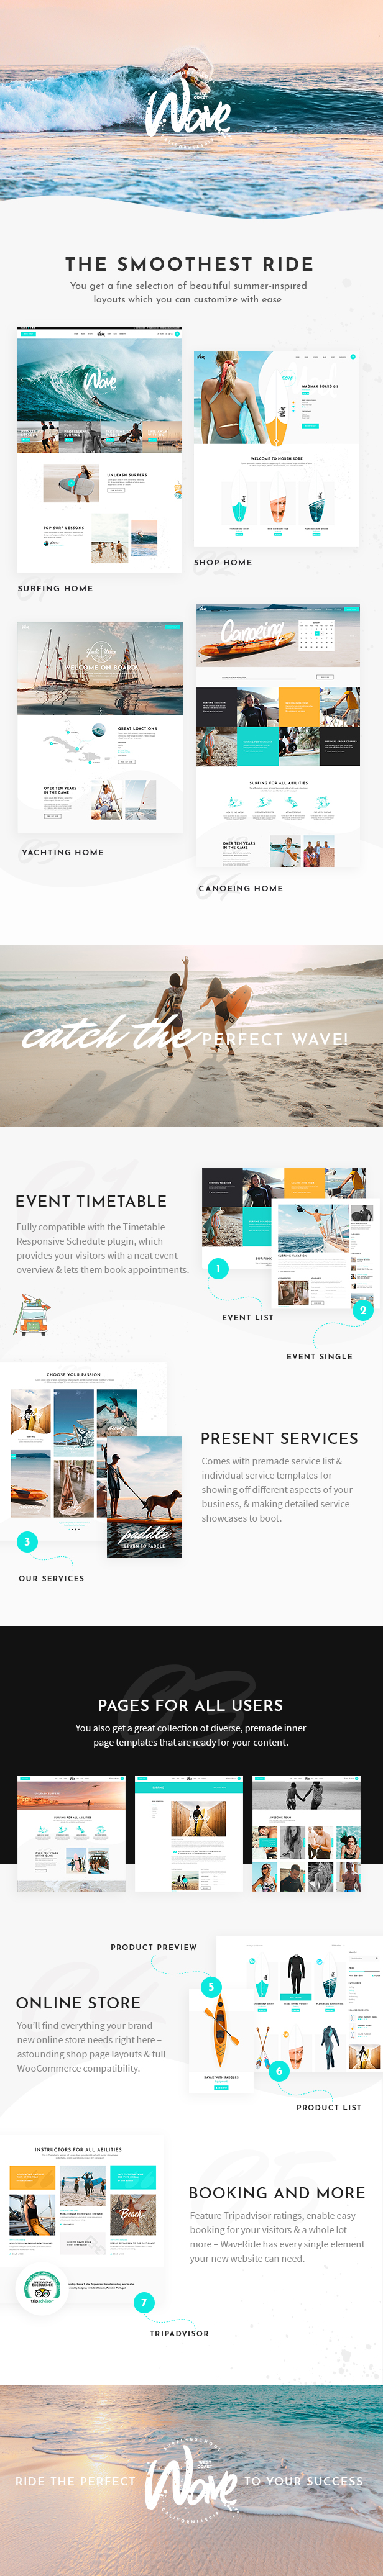 WaveRide - Surfing and Water Sports Theme - 1